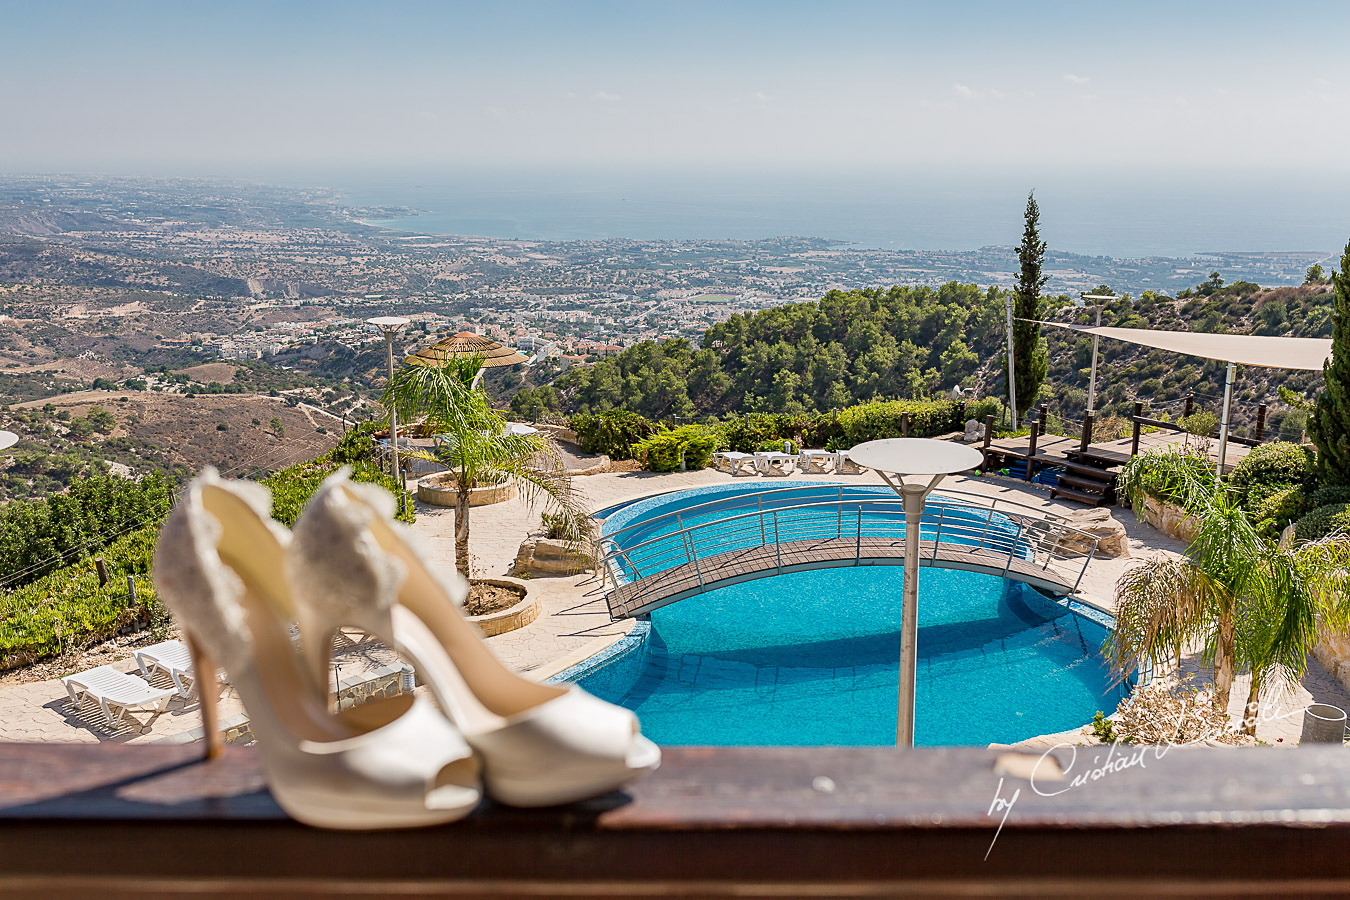 Wedding details captured by Cristian Dascalu at the Luxurious Paphos Wedding Villa in Cyprus.